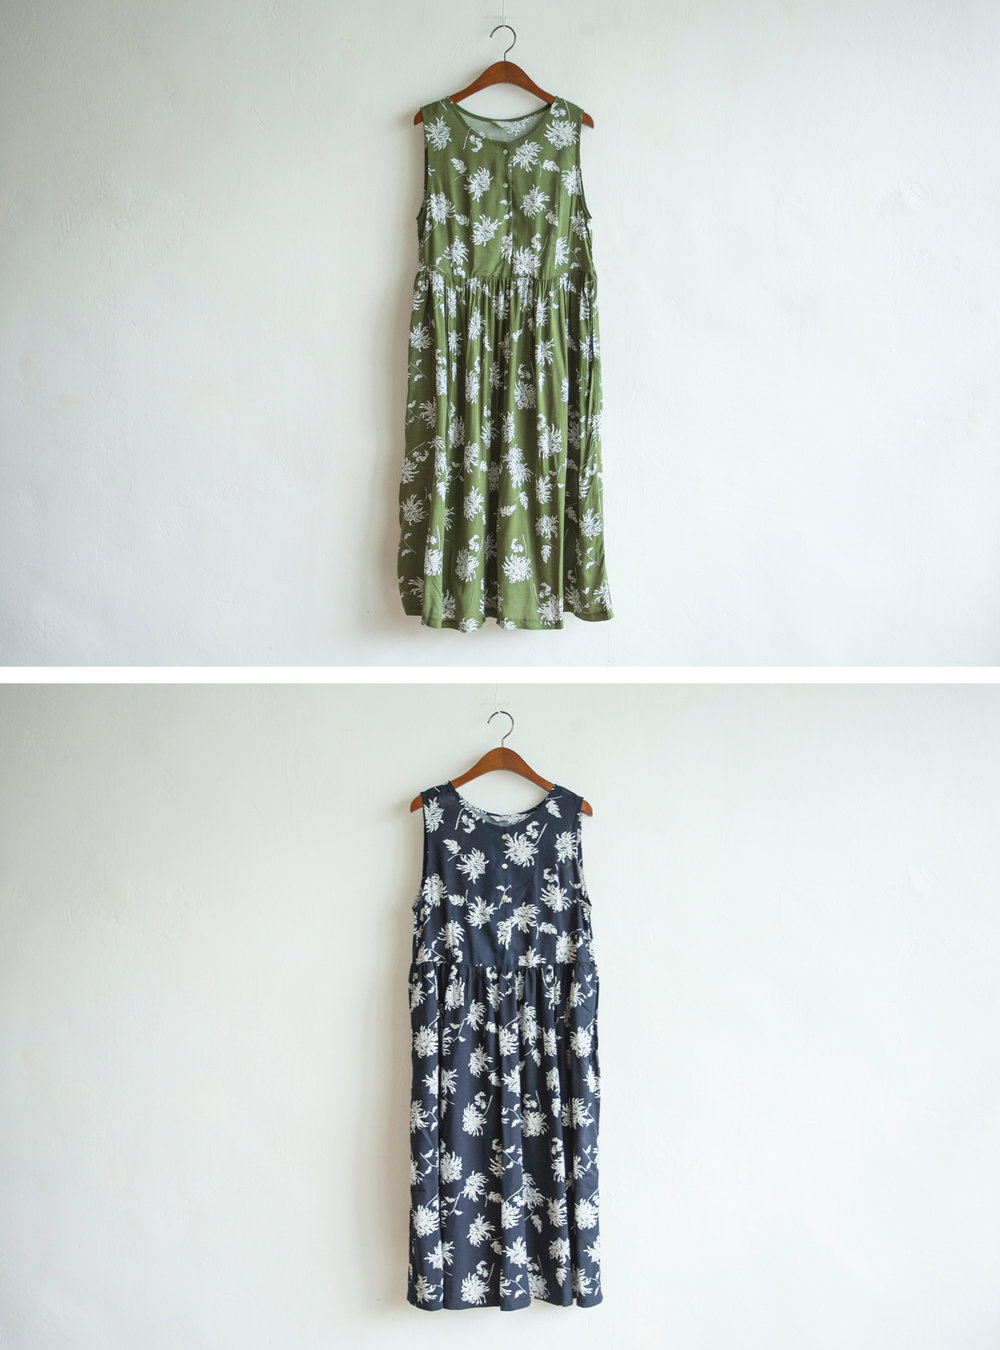 NBOA345 chrysanthemum cotton sleeveless dress    early bird price: HK$358 / NT$1540    regular price: HK$418 / NT$1800    color: green / navy    made in korea     measurement (cm) shoulder 35 bust 96 length 112 waist 92 hip 134